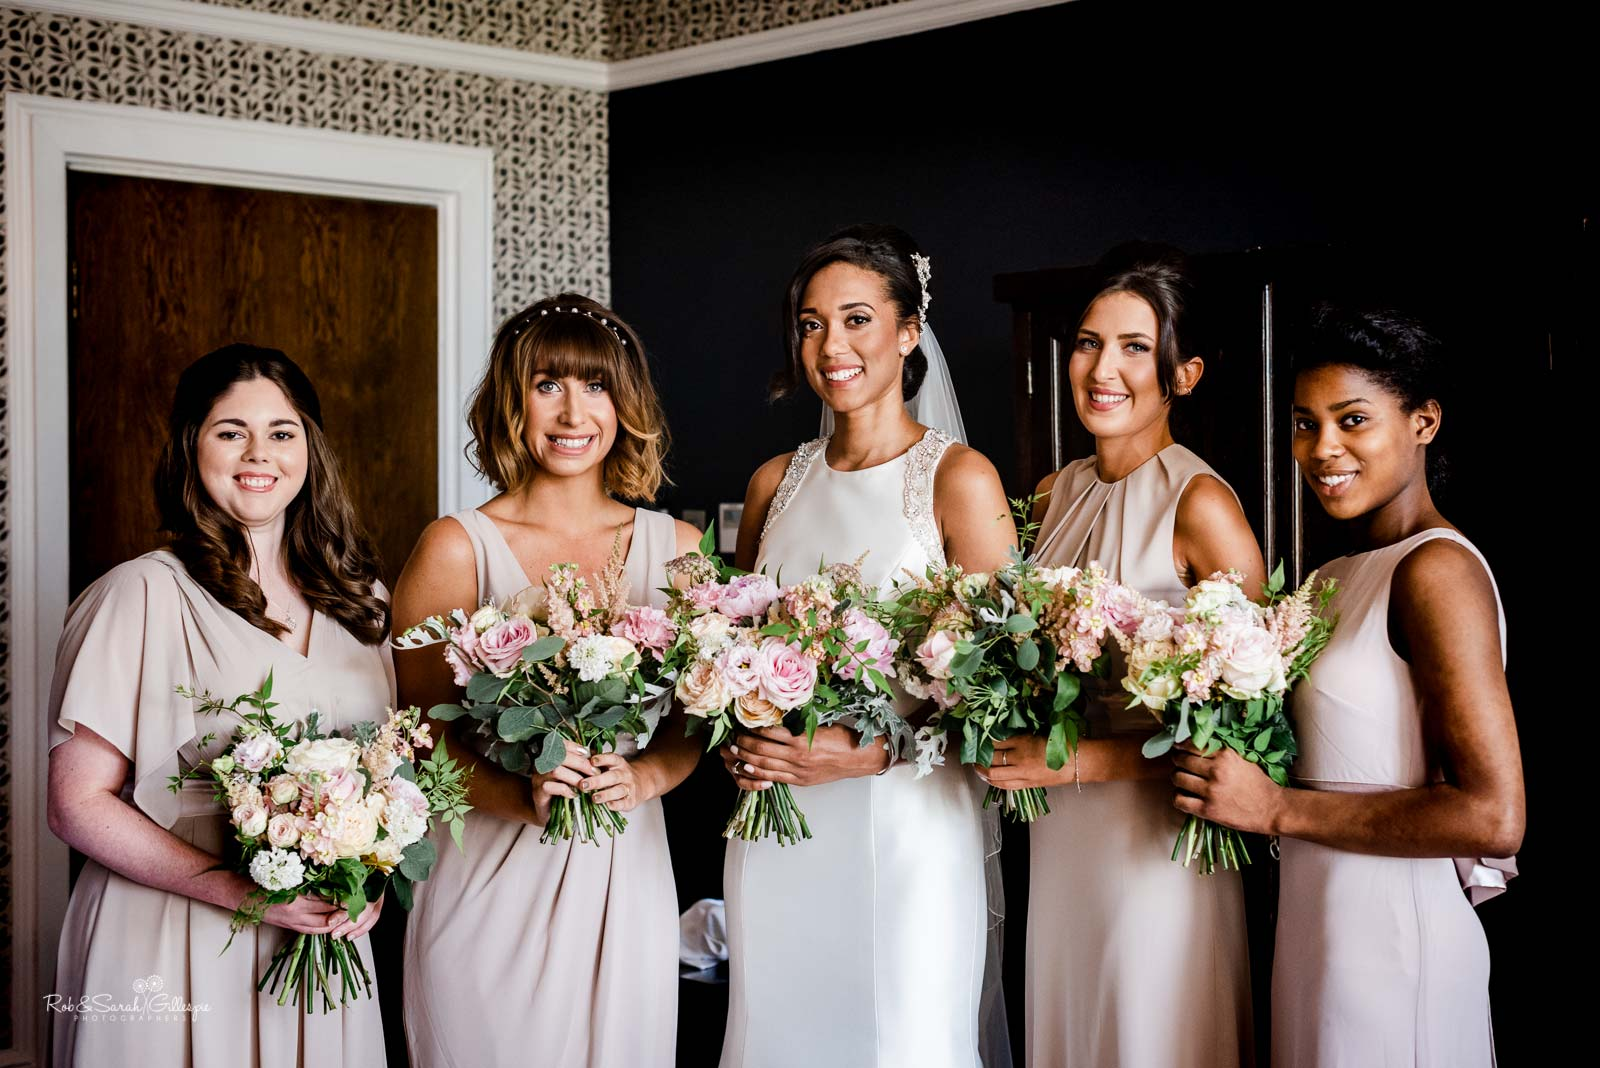 Group photo at Hampton Manor of bride and bridesmaids